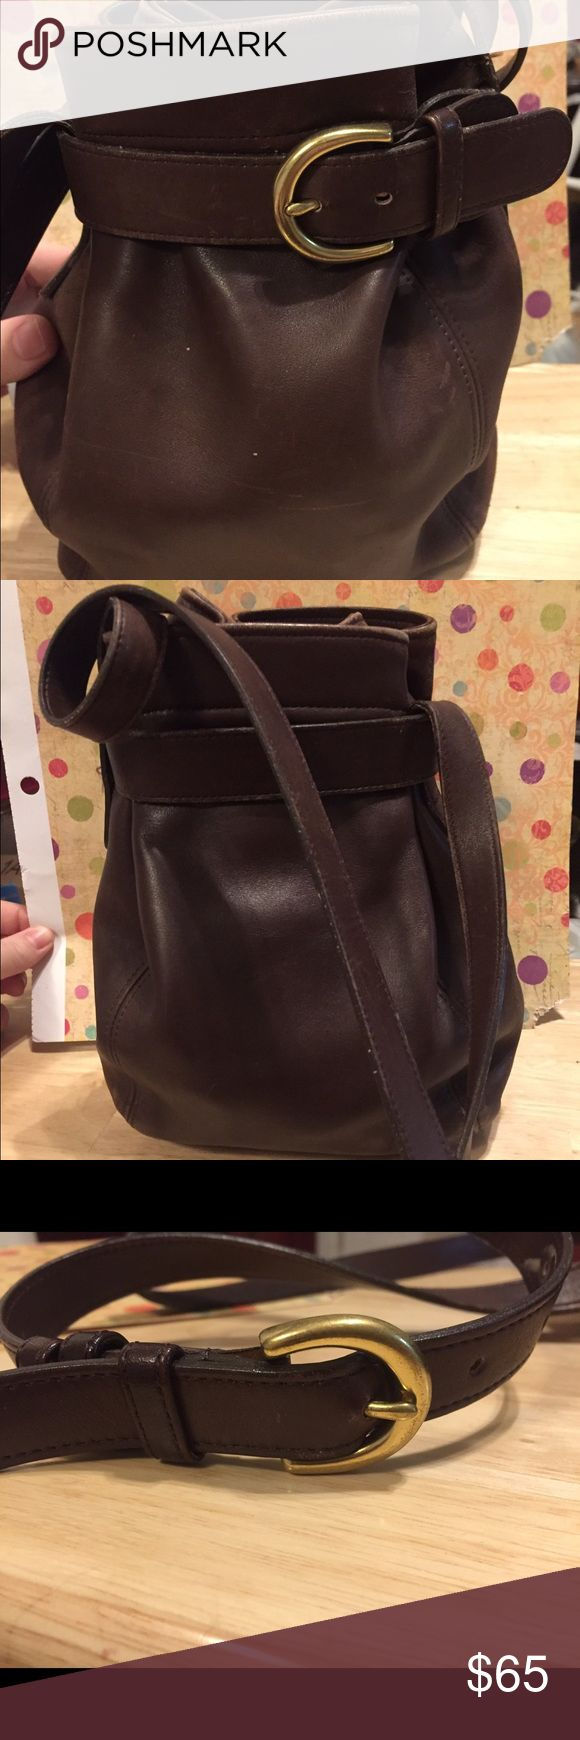 Rare COACH Legacy Brown Leather Bucket Bag Vintage COACH Legacy Brown Bucket bag. In great vintage condition. A hard to find bag.                                     Width 9 inches Height 10 inches Strap Drop 23 inches From a smoke free home. Coach Bags Satchels